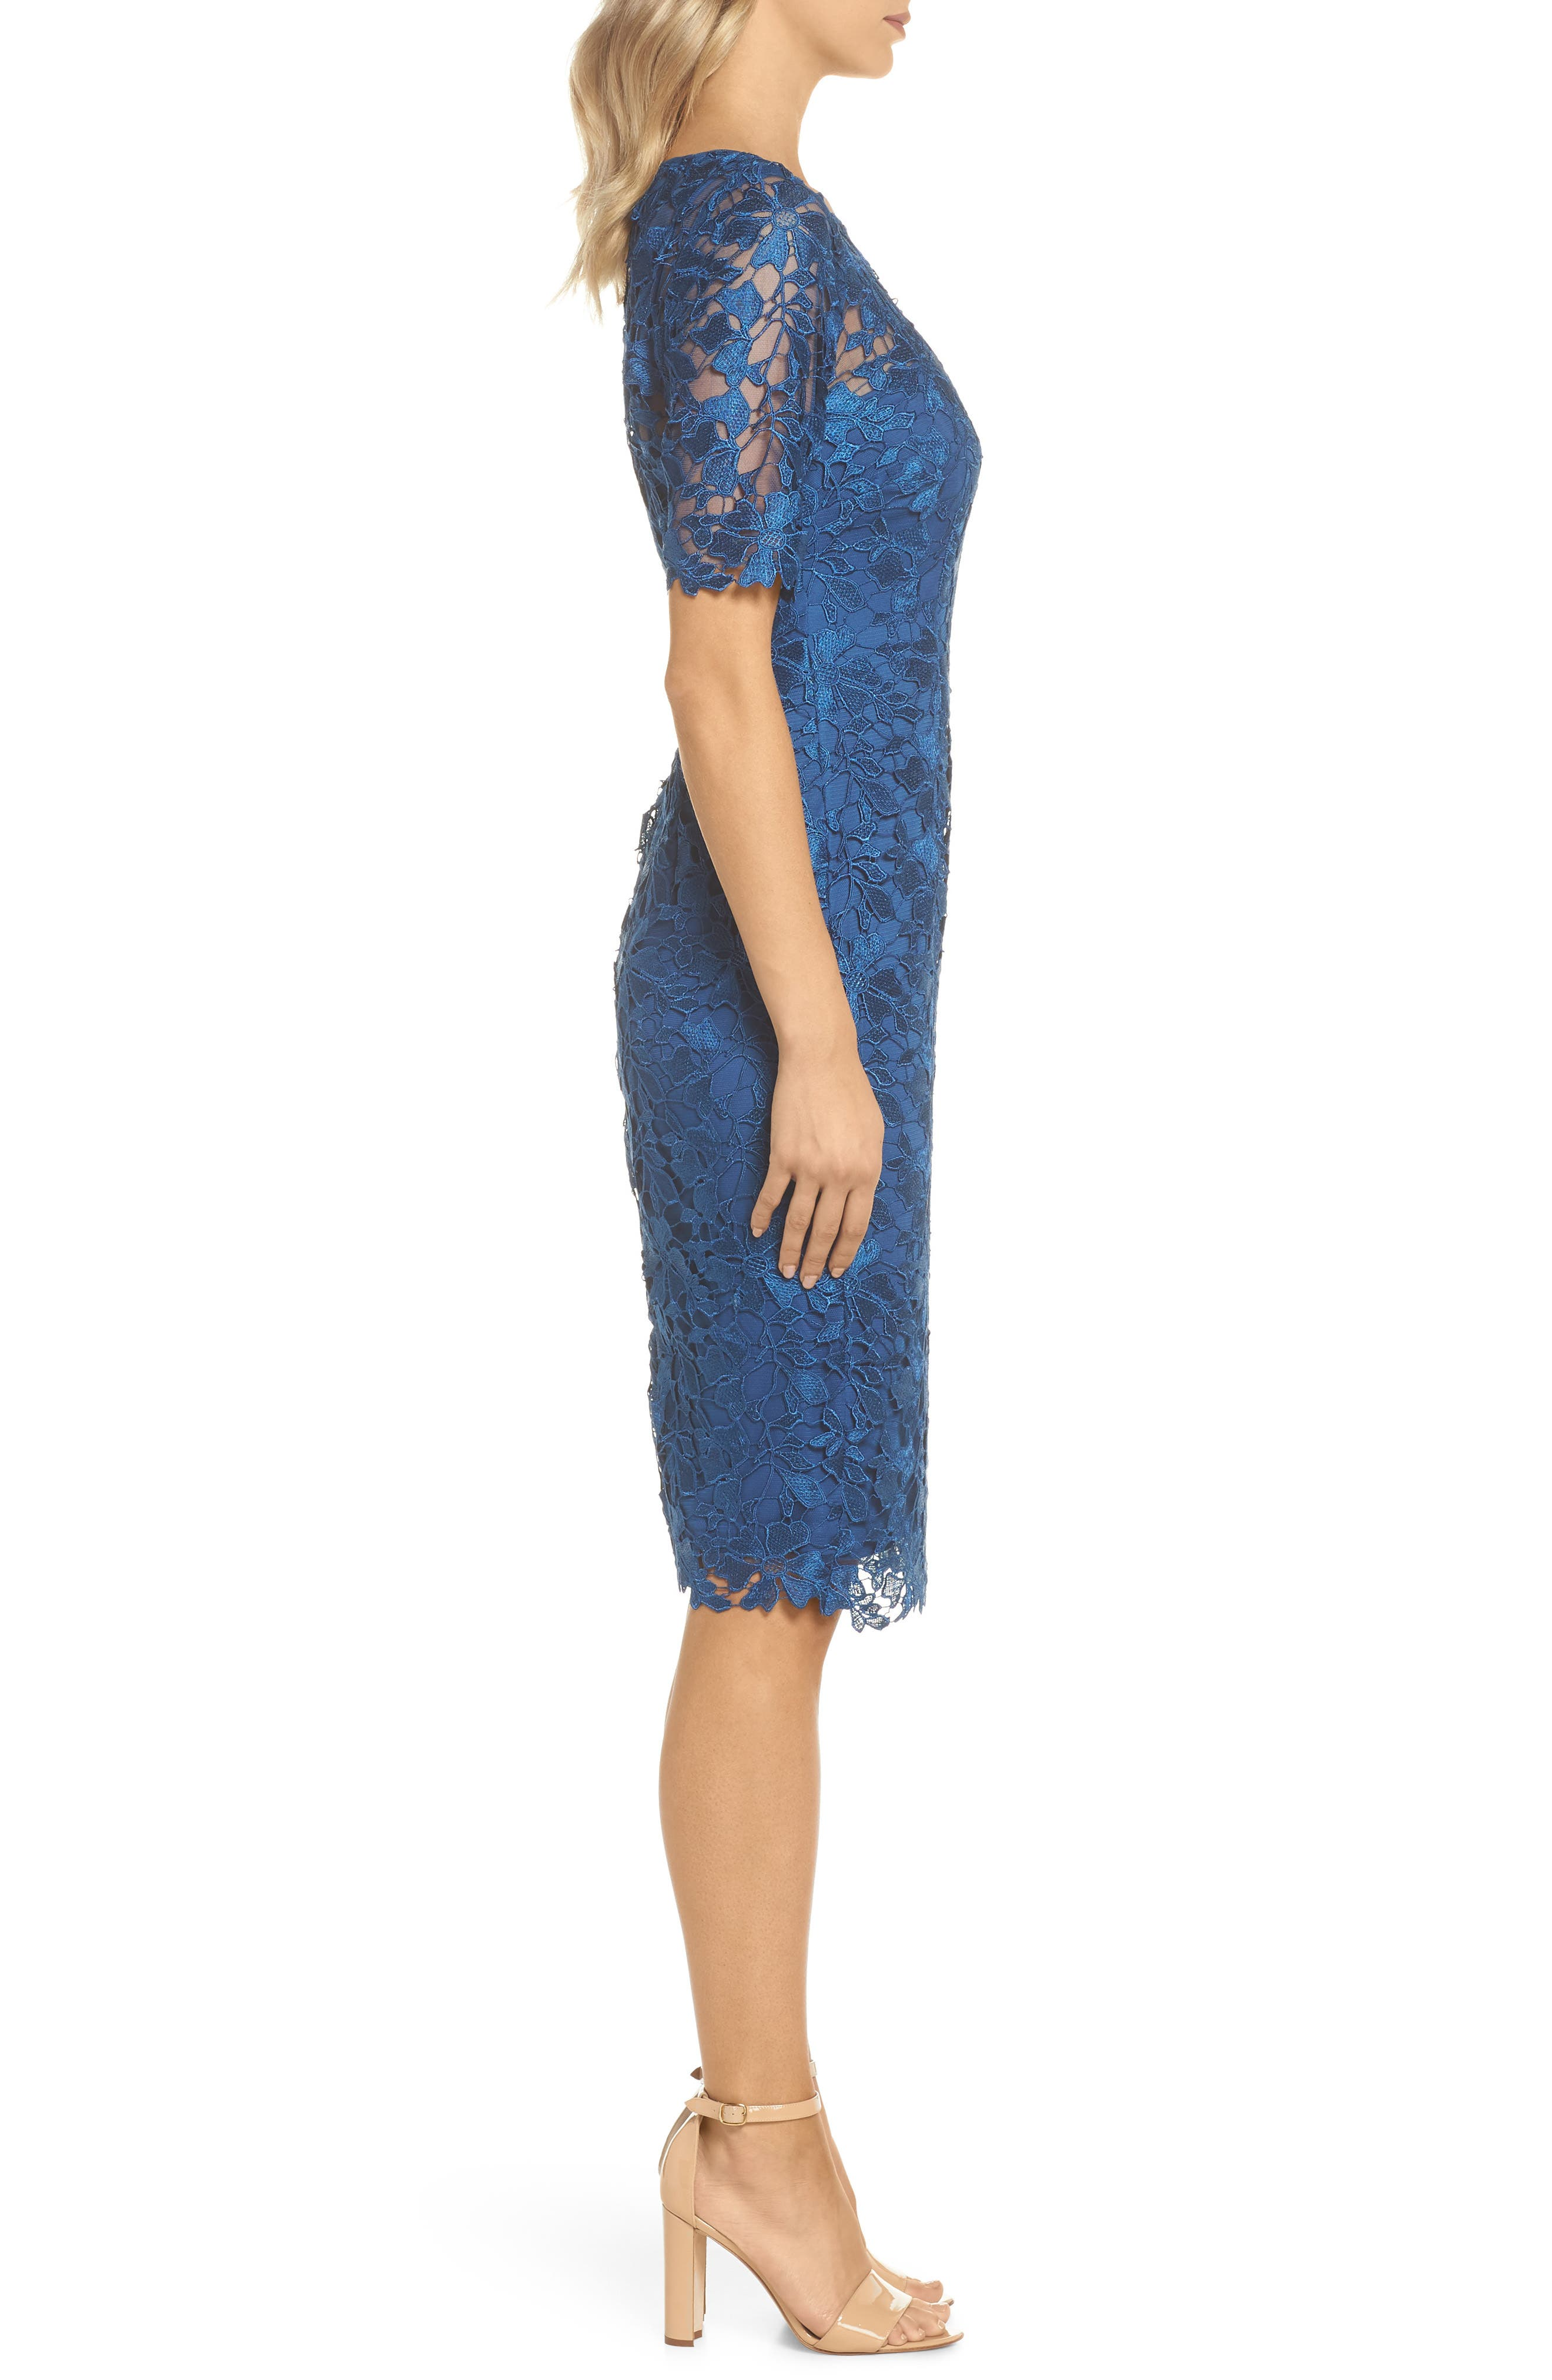 ADRIANNA PAPELL,                             Guipure Lace Sheath Dress,                             Alternate thumbnail 3, color,                             413